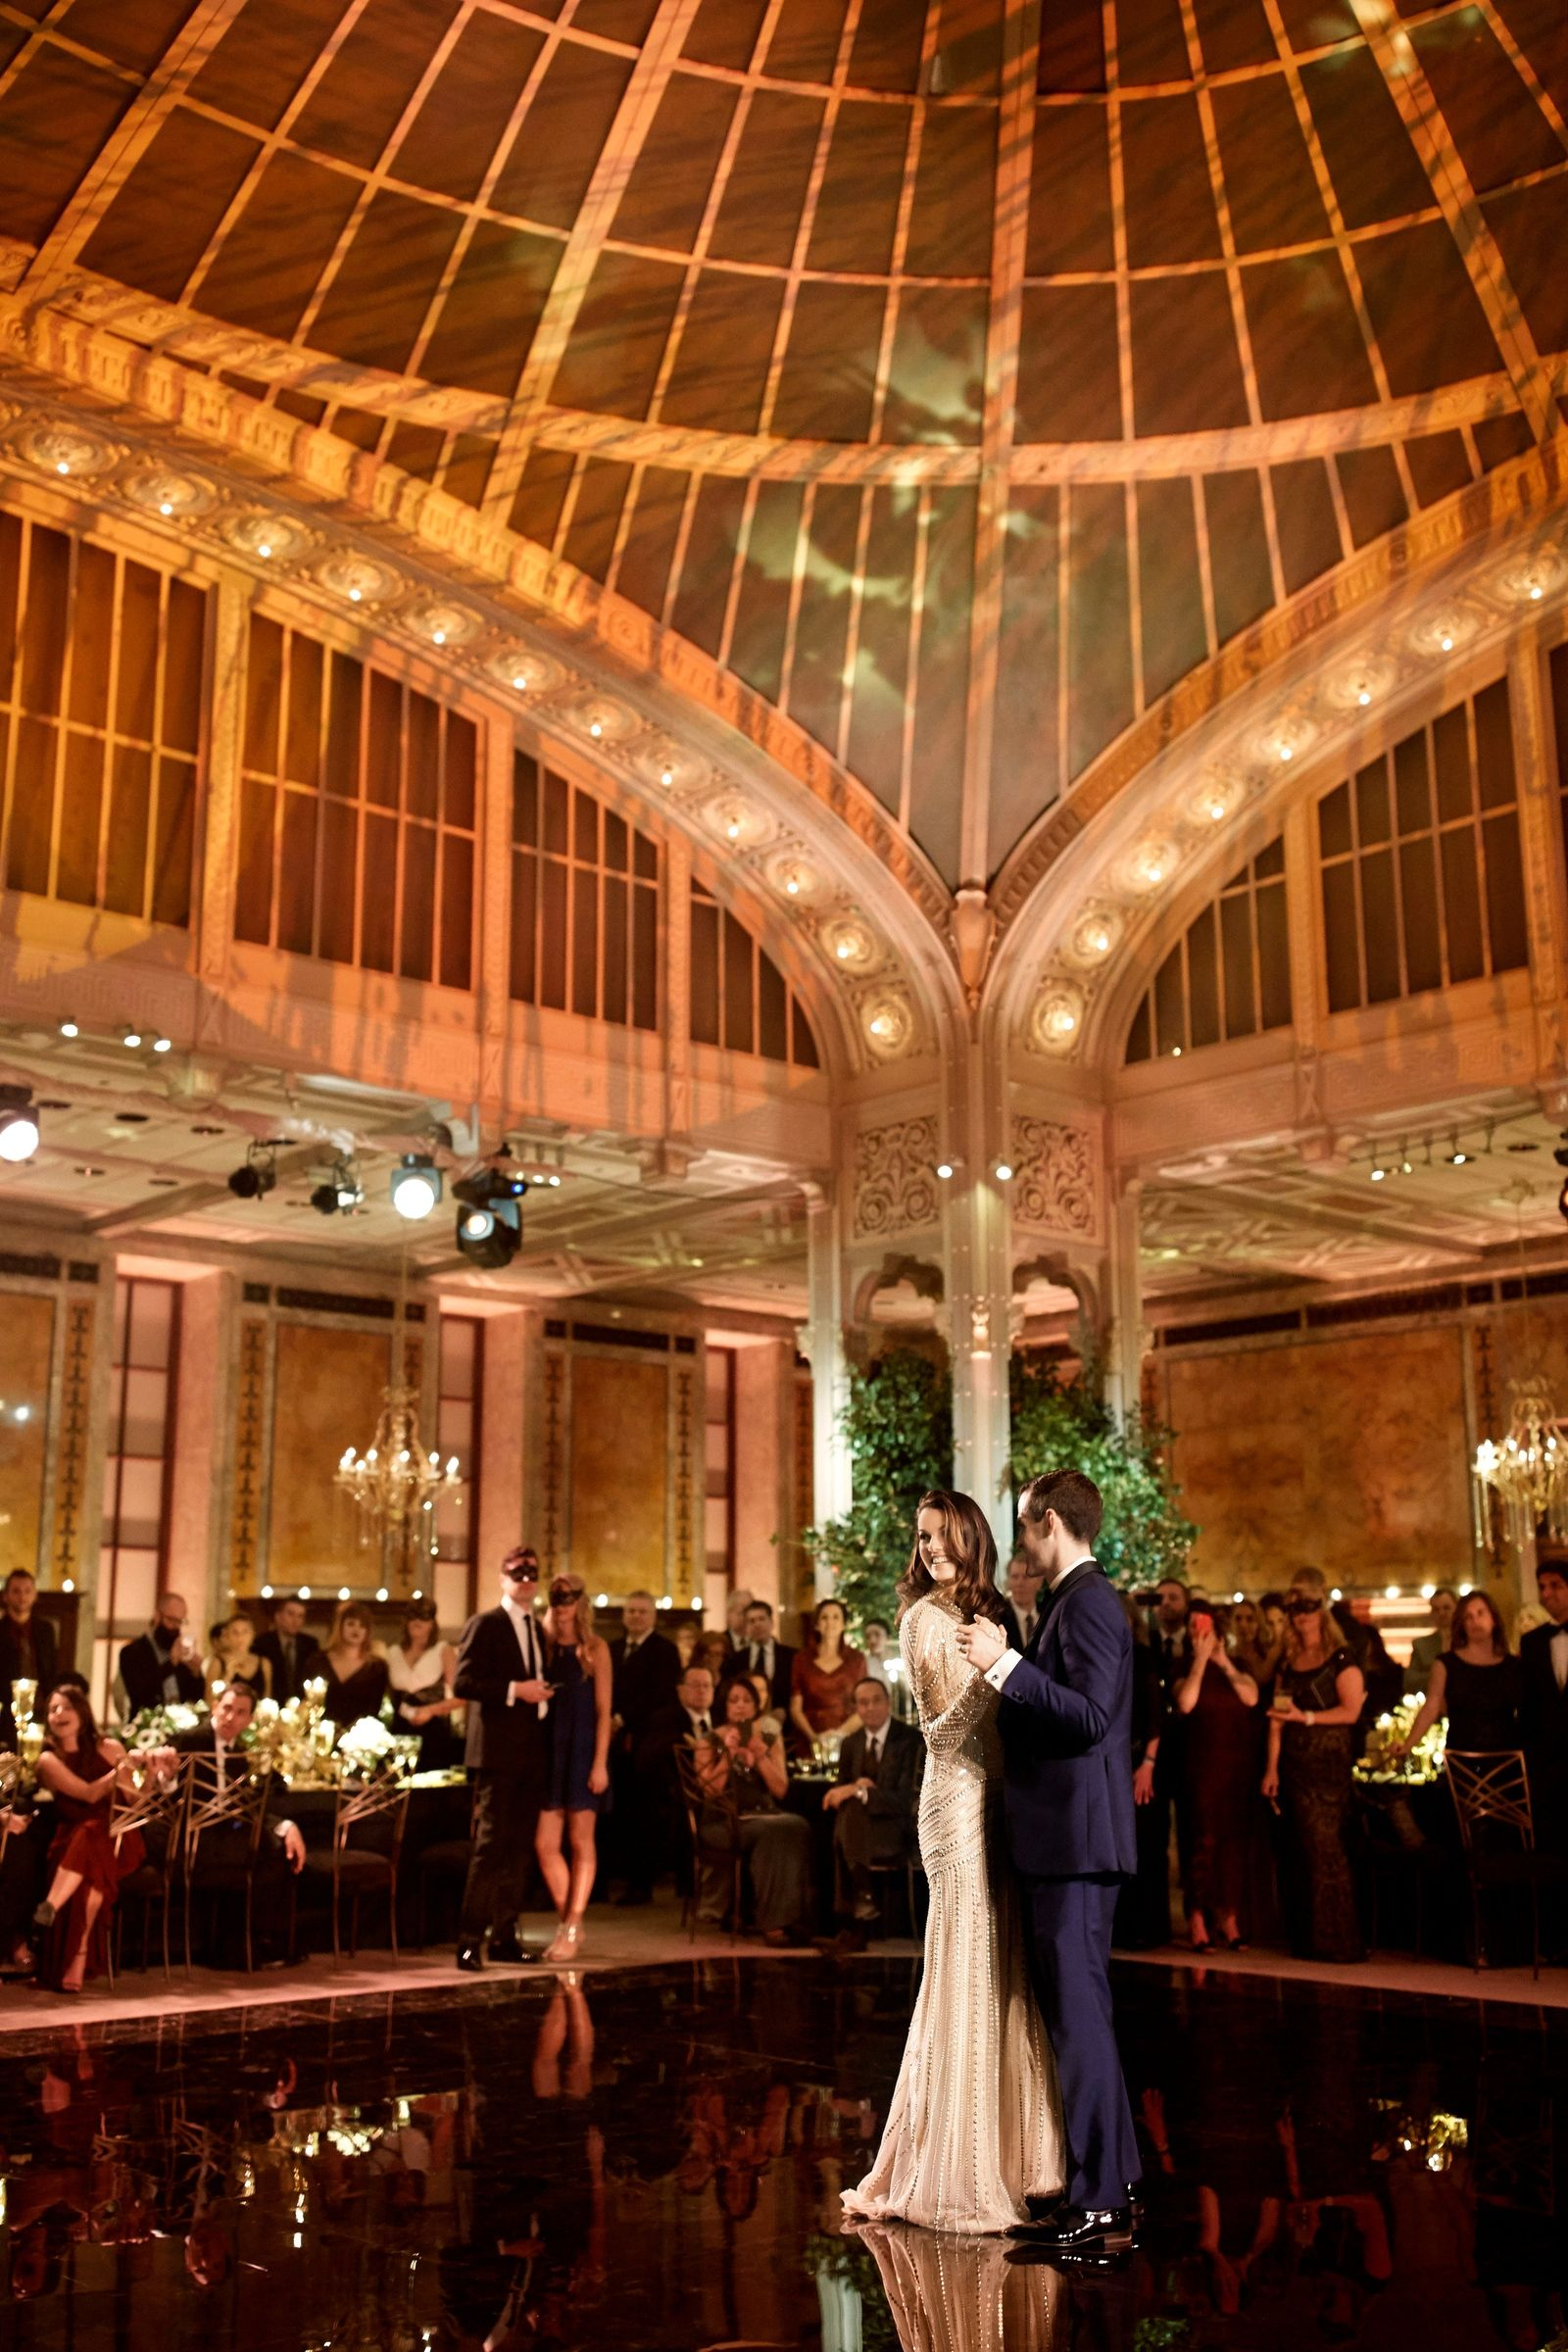 New York Public Library Wedding In 2020 Library Wedding Wedding New Years Wedding